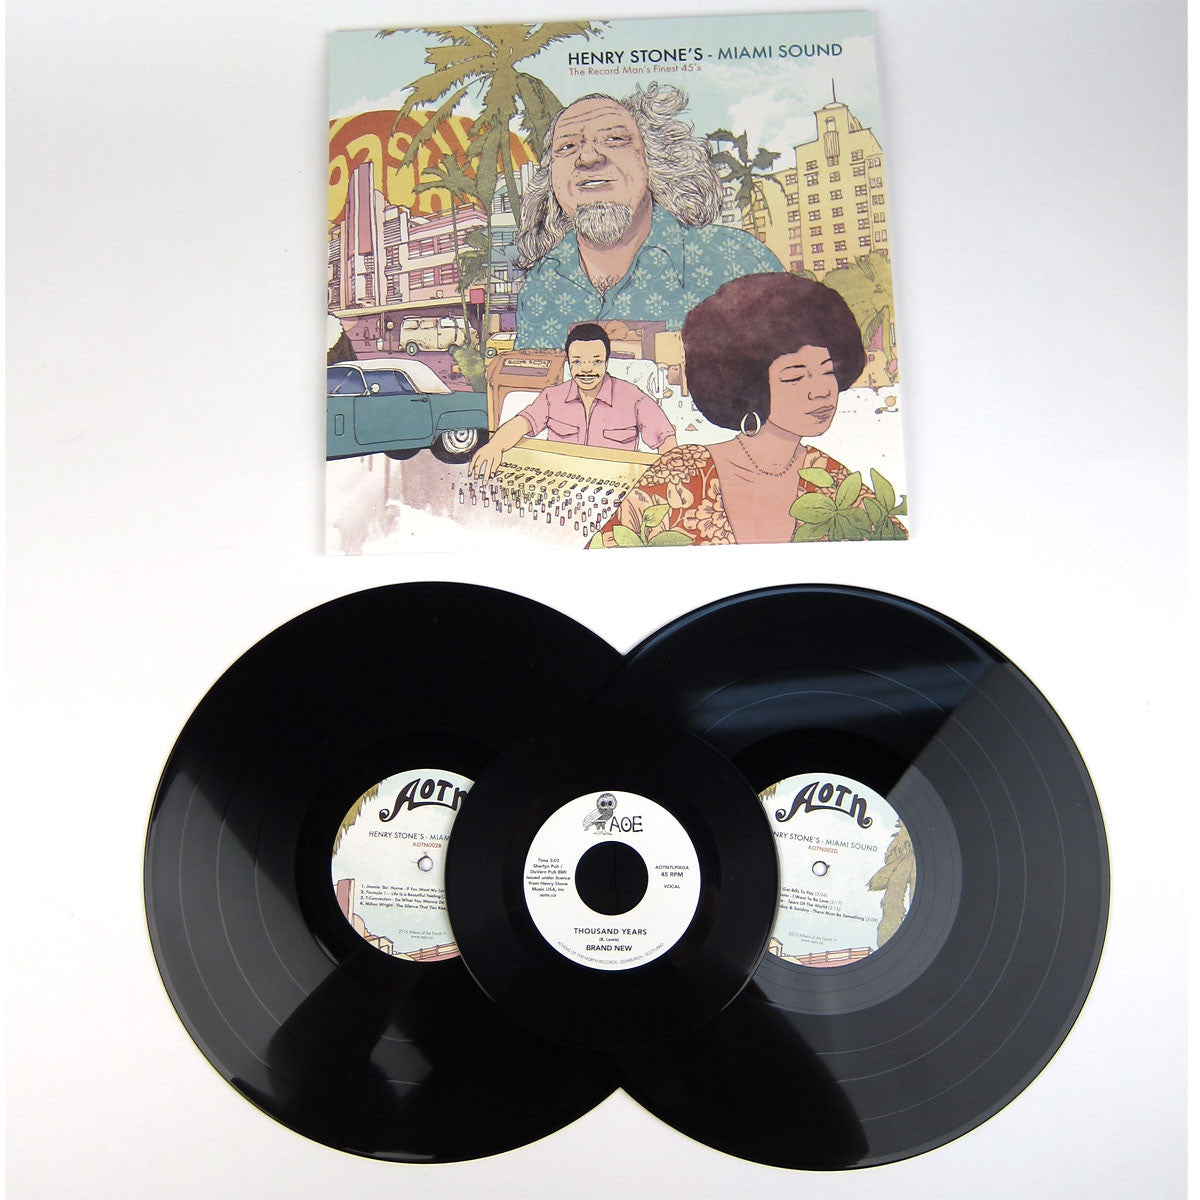 Athens Of The North: Henry Stone's Miami Sound (The Record Man's Finest 45's) Vinyl 2LP+7""